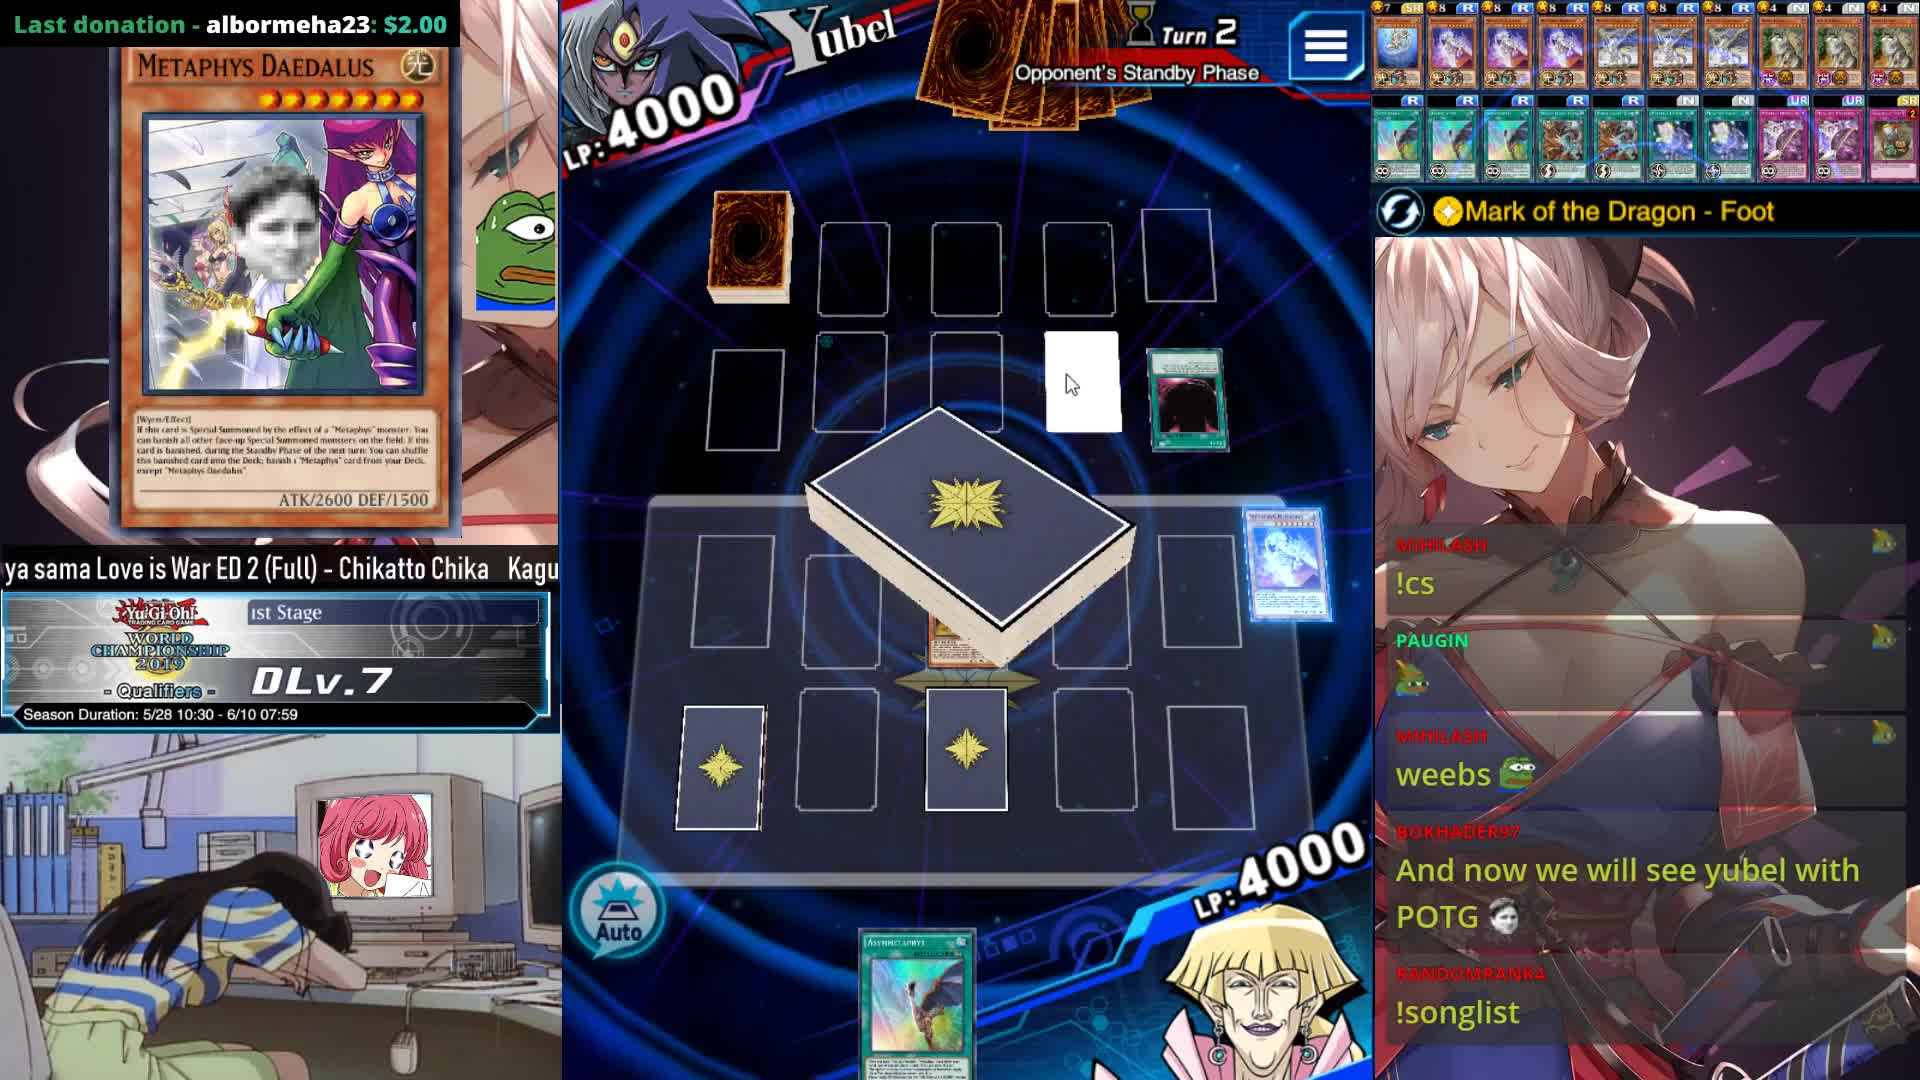 nifroth - DLV MAX #6 F2P Metaphys [1 KOG in June for now